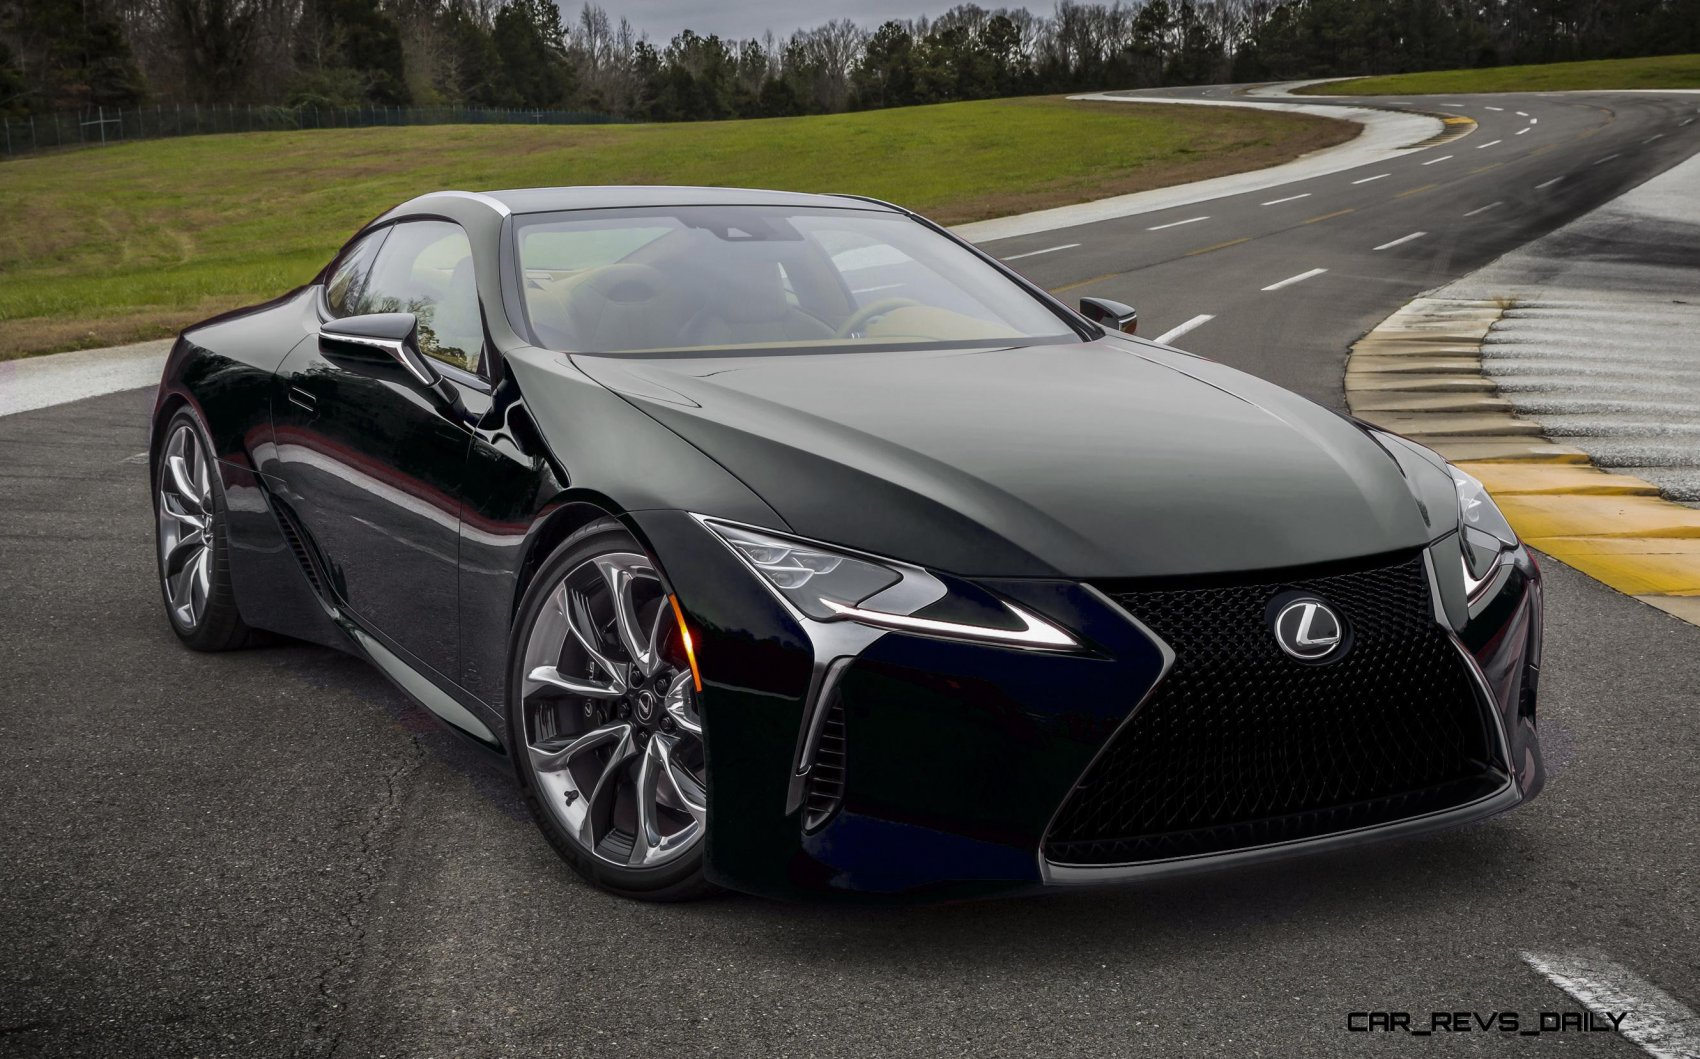 2017 lexus lc500 colors visualizer black chrome looks 150 shades. Black Bedroom Furniture Sets. Home Design Ideas